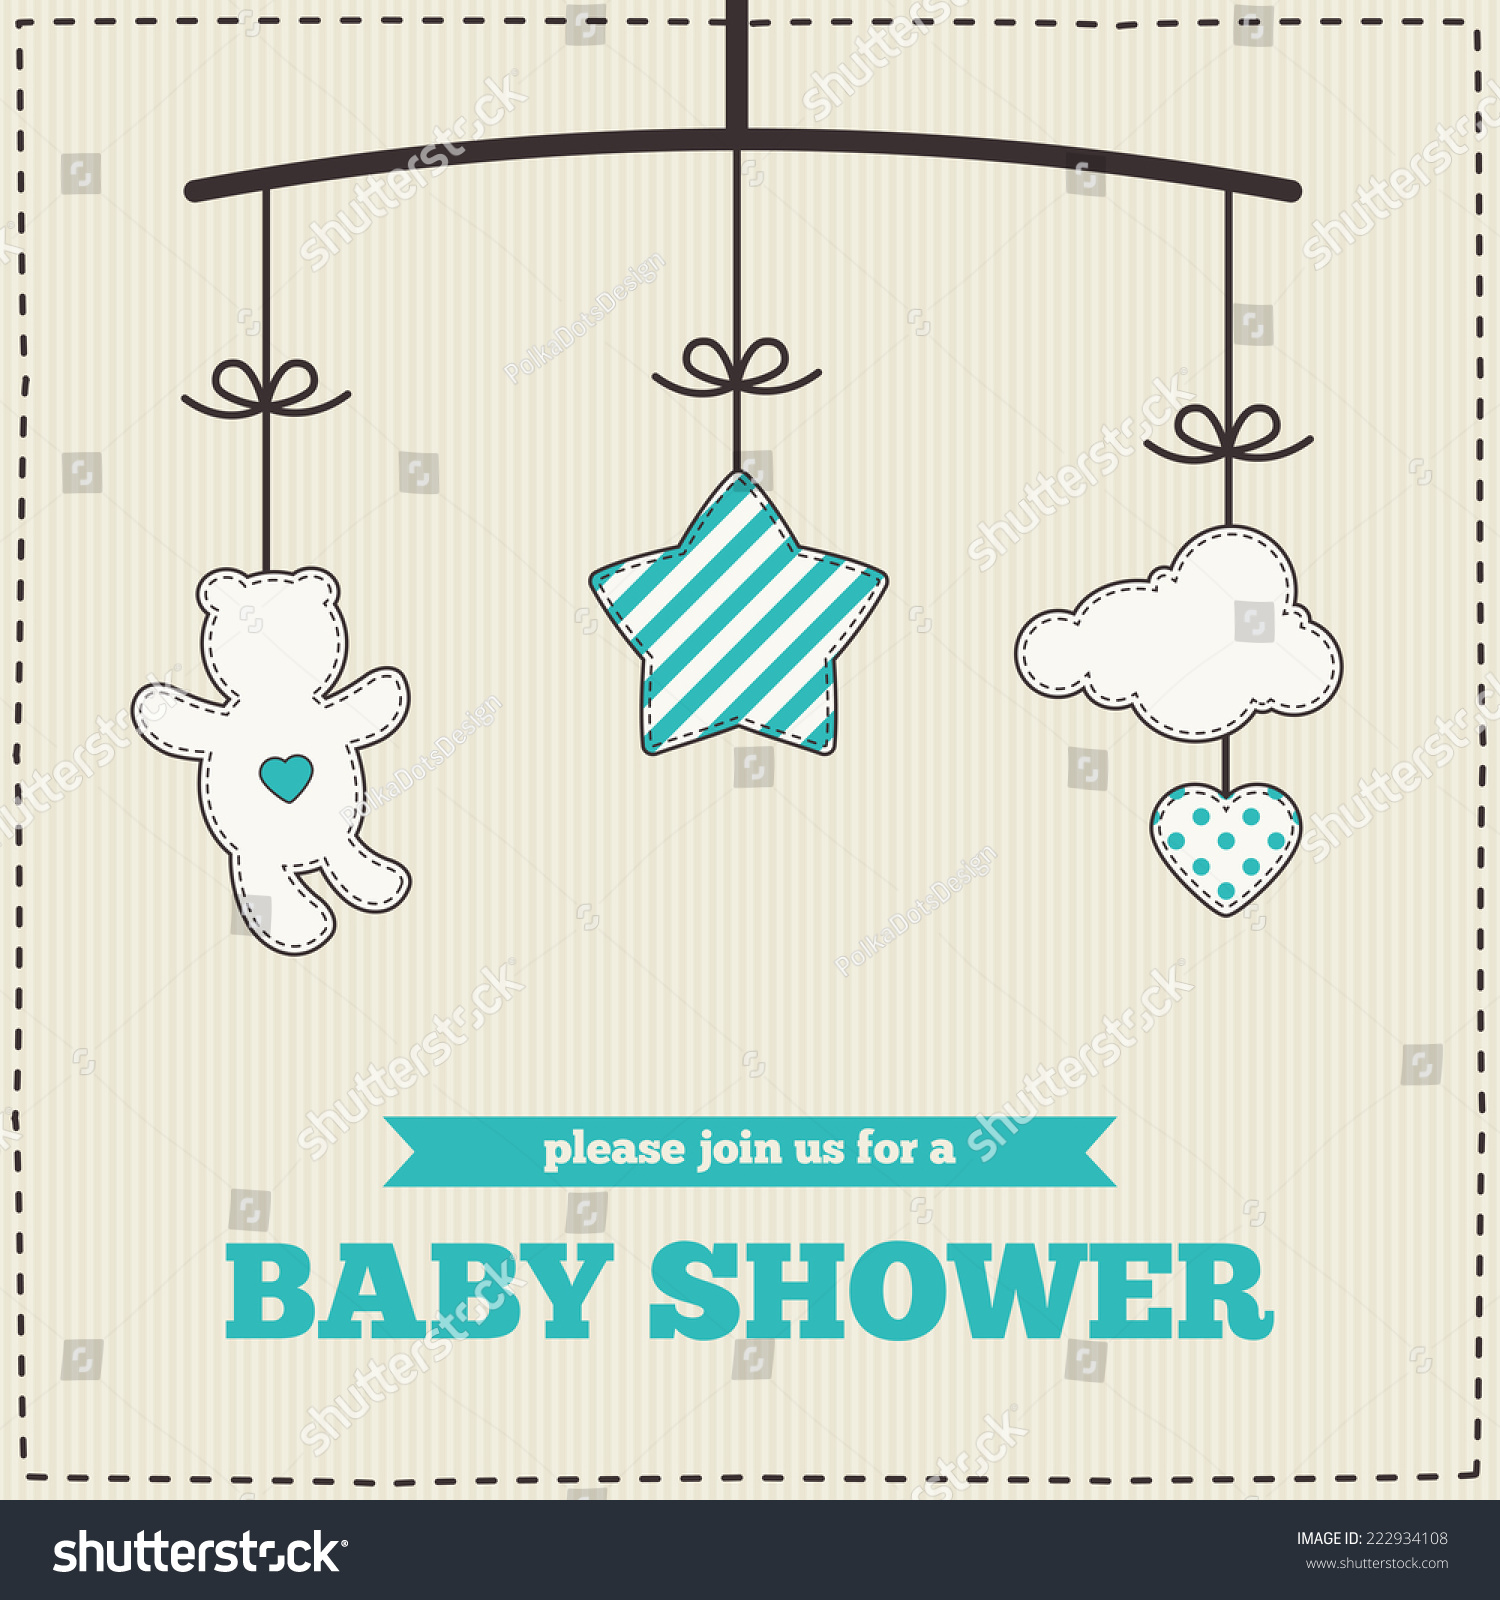 Baby Shower Invitation Template Blue White Stock Vector 222934108 ...